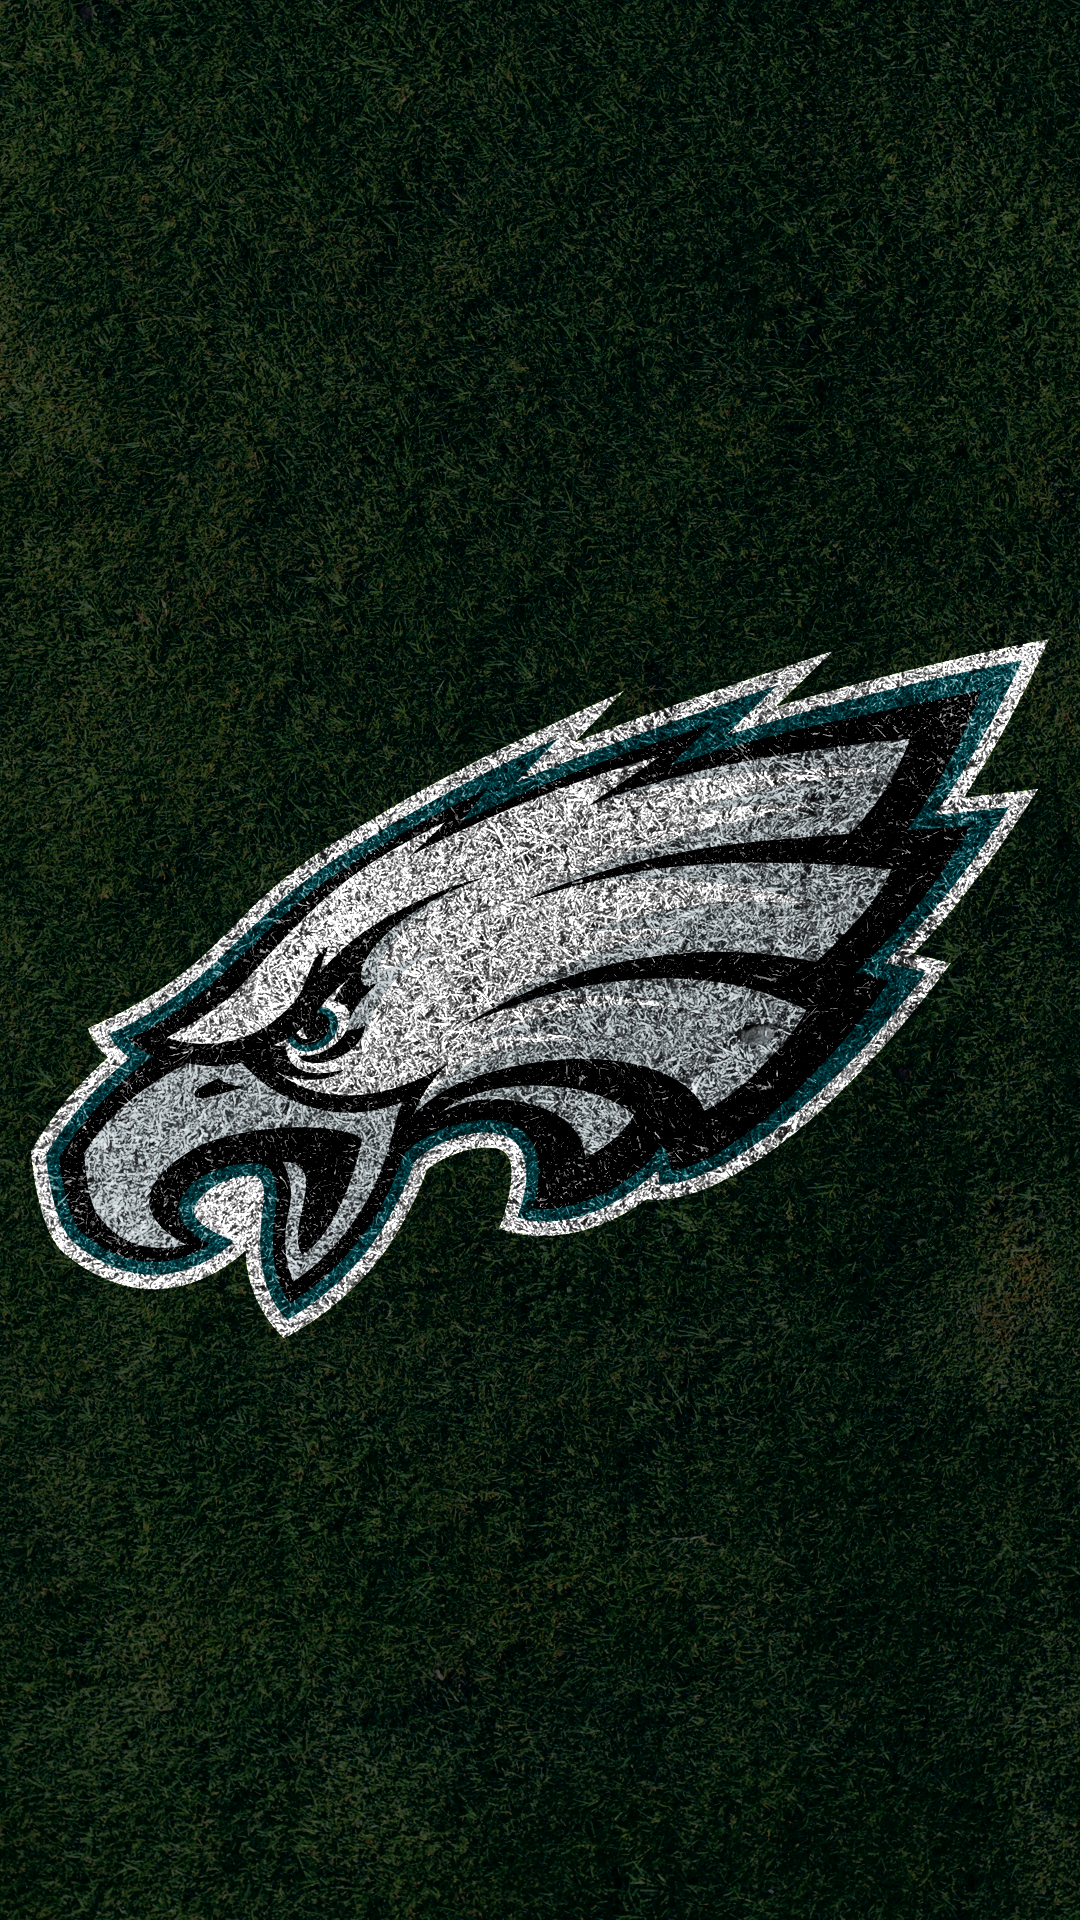 Philadelphia Eagles Iphone Wallpapers 25 Wallpapers 3d Wallpapers Philadelphia Eagles Wallpaper Philadelphia Eagles Philadelphia Eagles Football